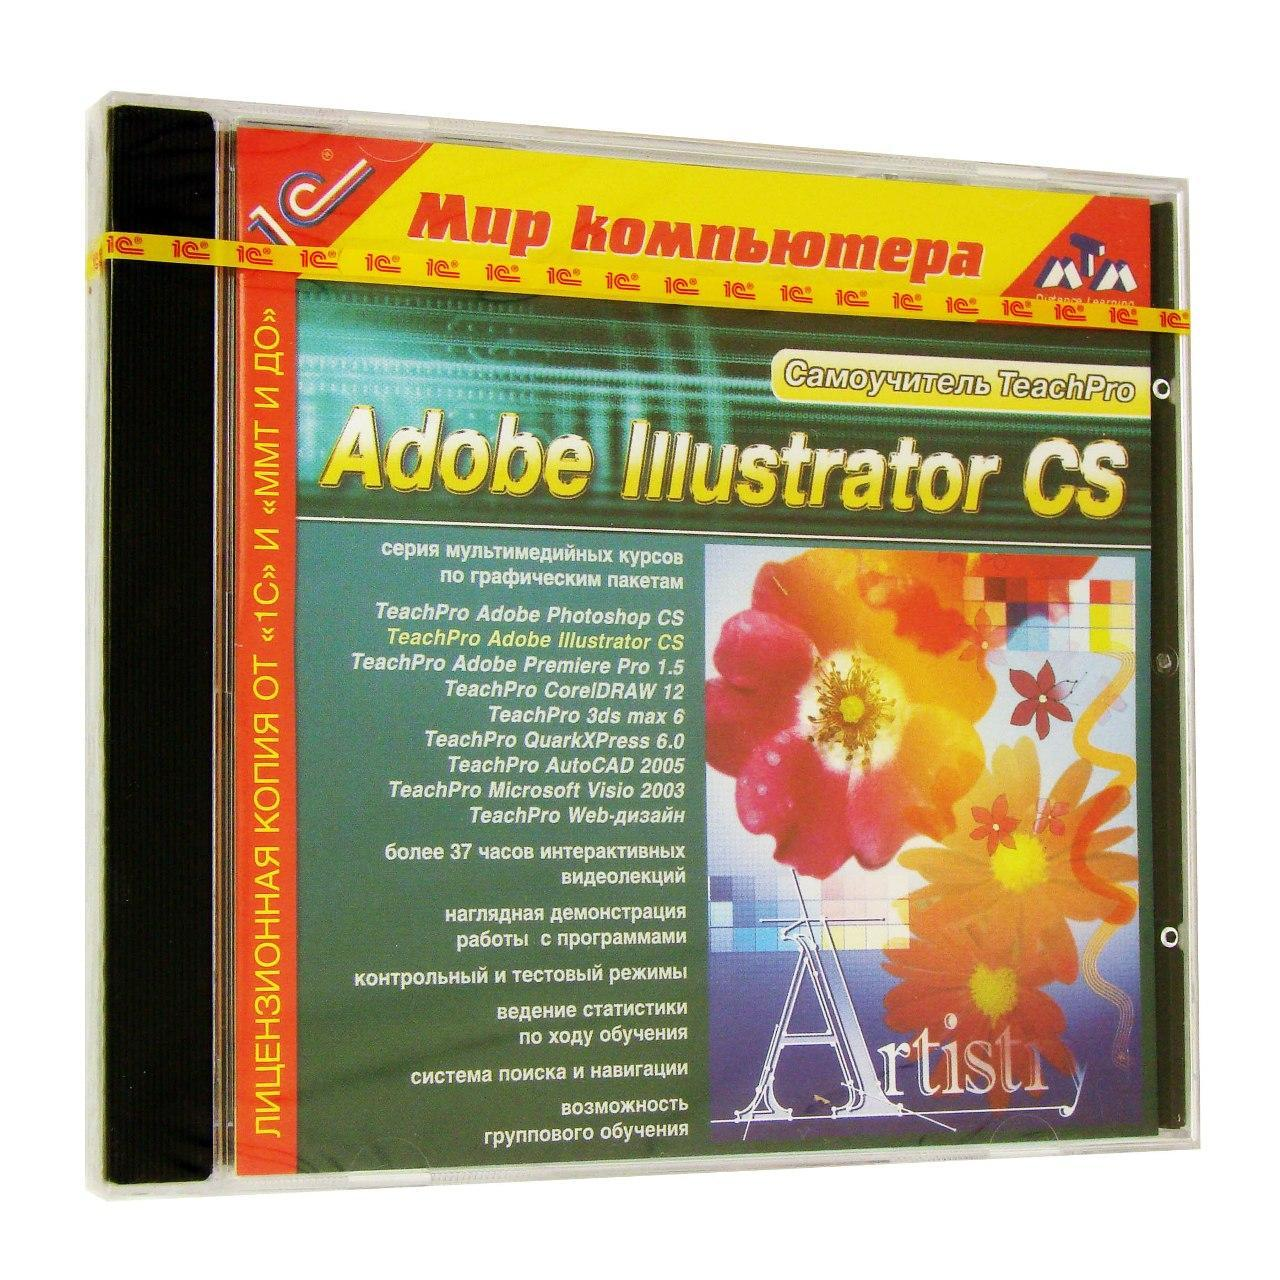 "Компьютерный компакт-диск Adobe Illustrator CS TeachPro (PC), фирма ""1C"", 1CD"